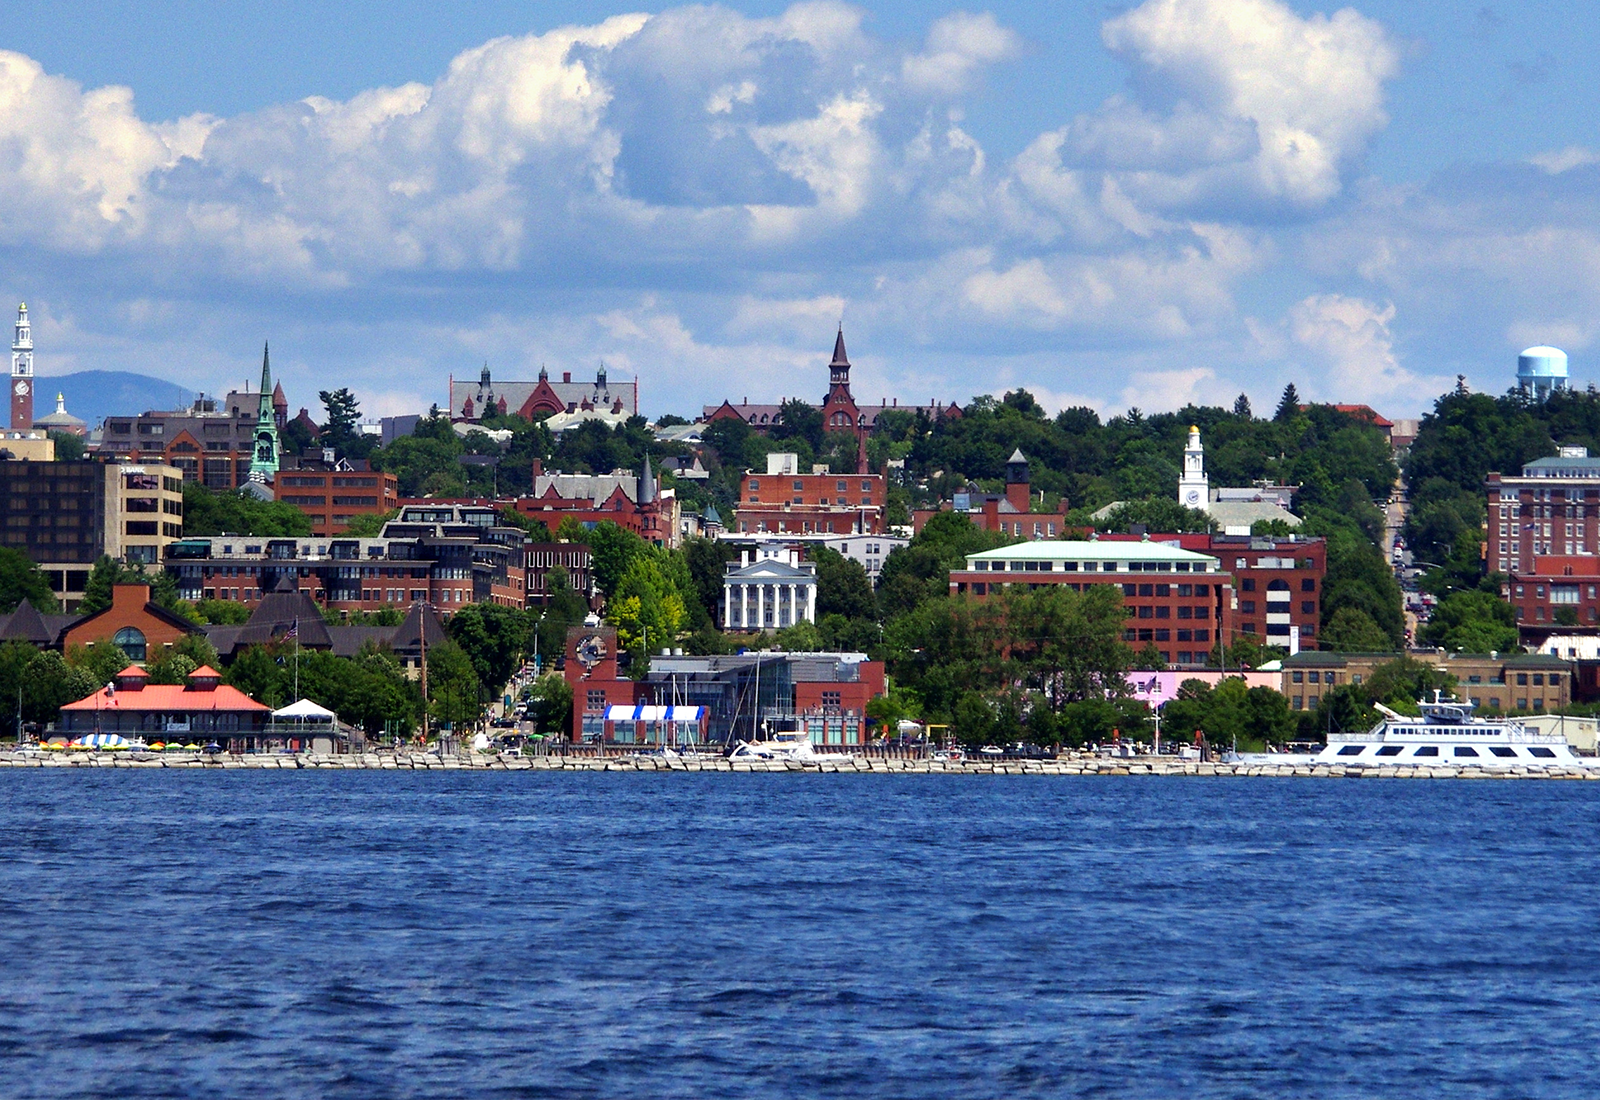 Champlain College is located in this ideal College Town with some of the best outdoor adventure terrain in the country. A view of downtown Burlington, shot from Lake Champlain.